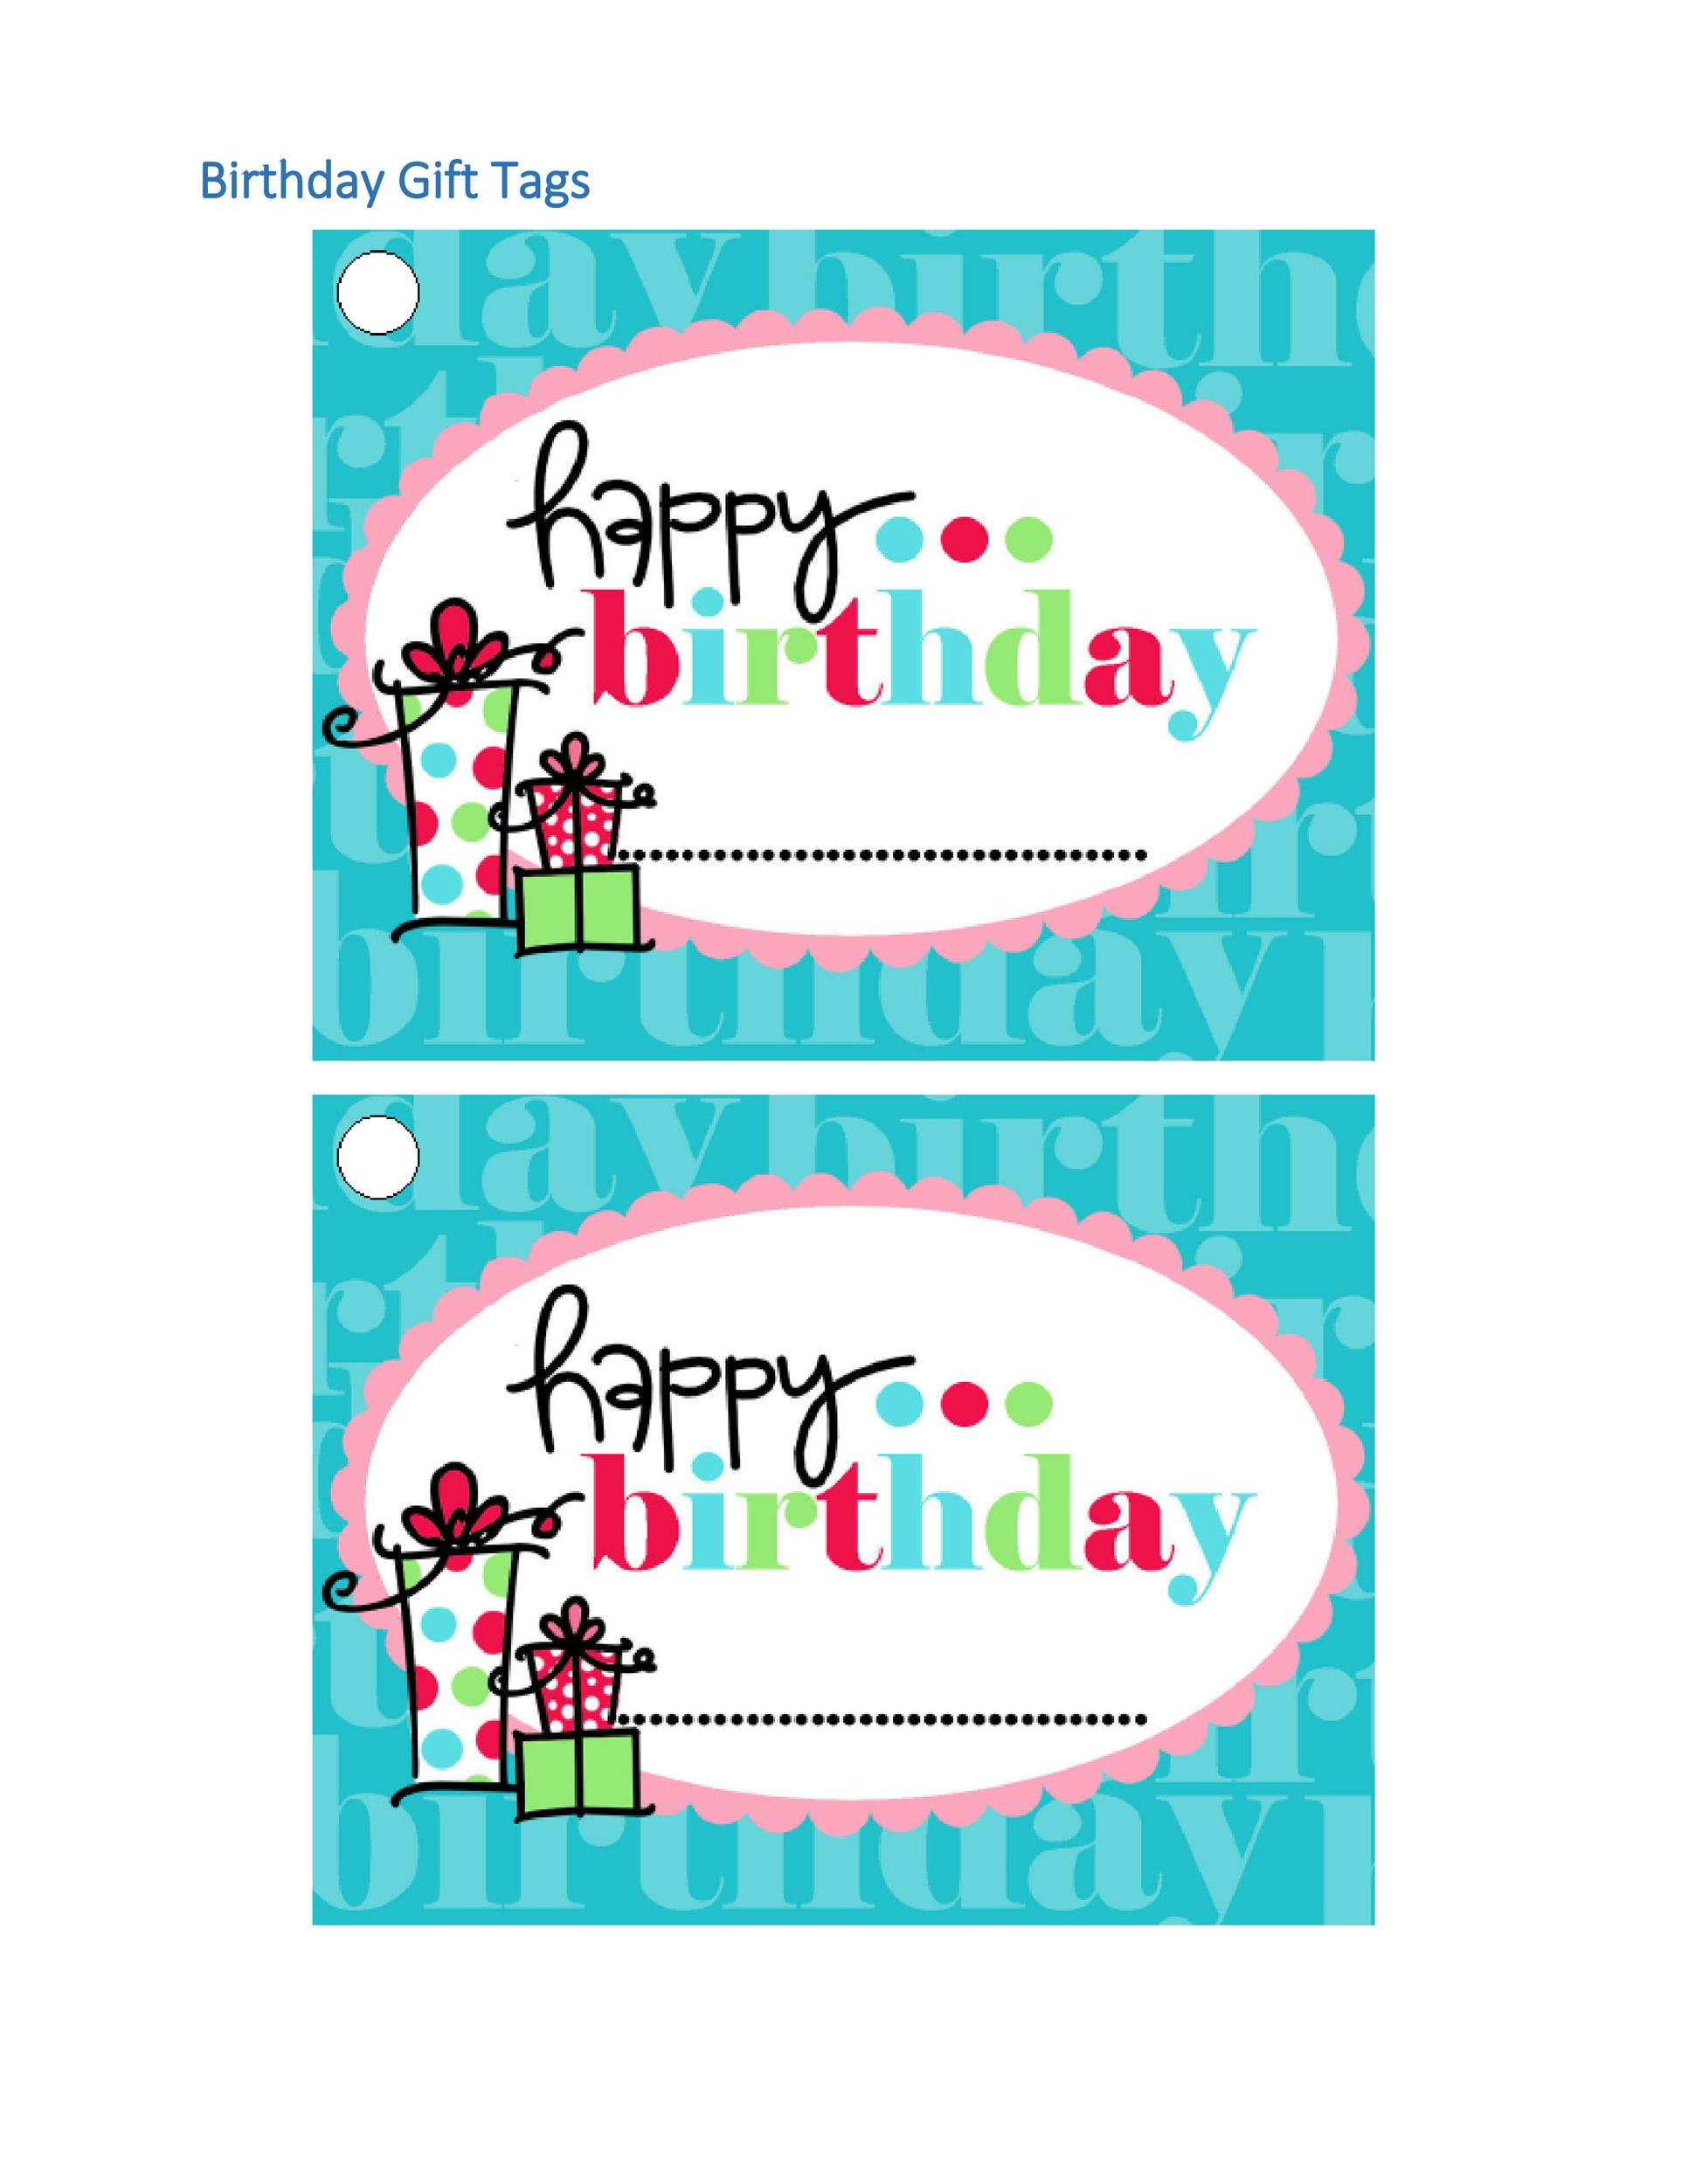 graphic about Large Gift Tags Printable named 44 Totally free Printable Present Tag Templates ᐅ Template Lab